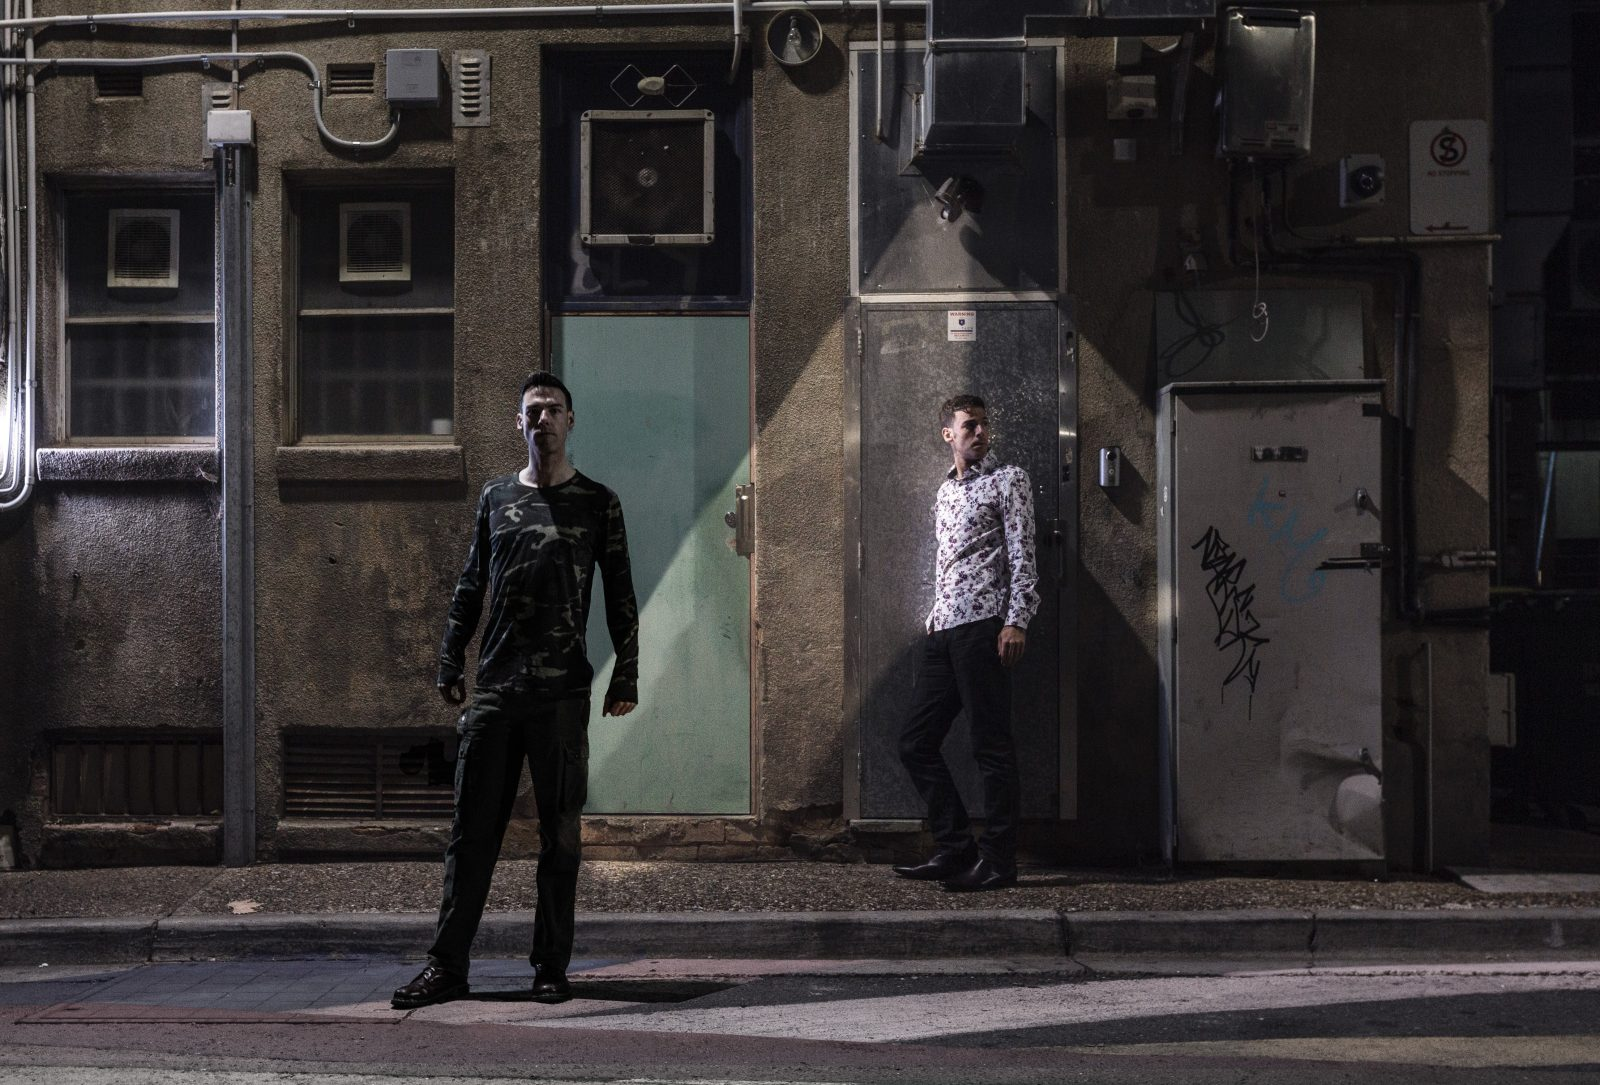 The Howie Lee and The Rookie Lee loiter in a grimey back alley.